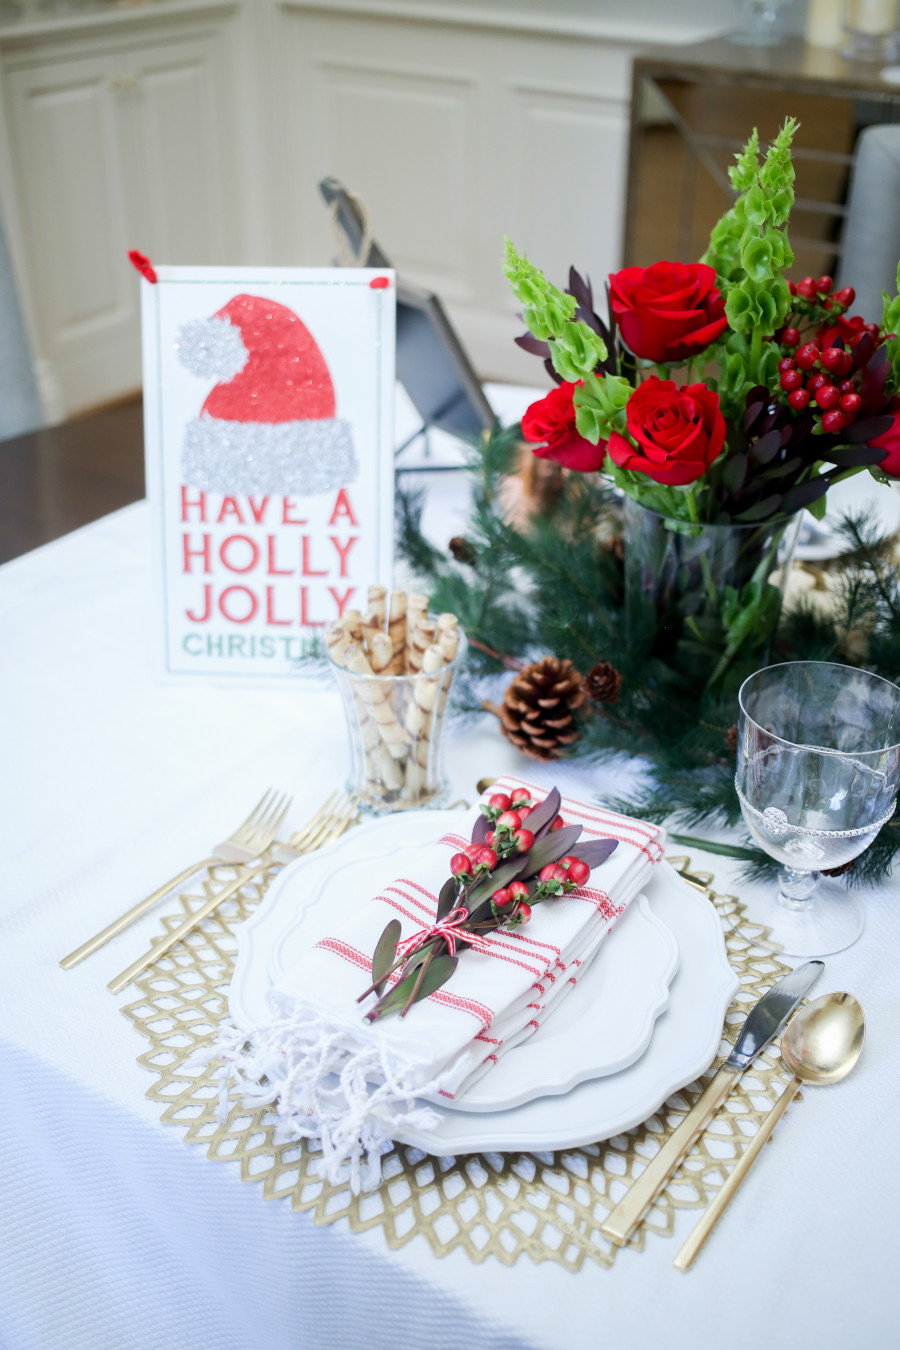 & Christmas Table: Three Table setting Ideas - Fashionable Hostess